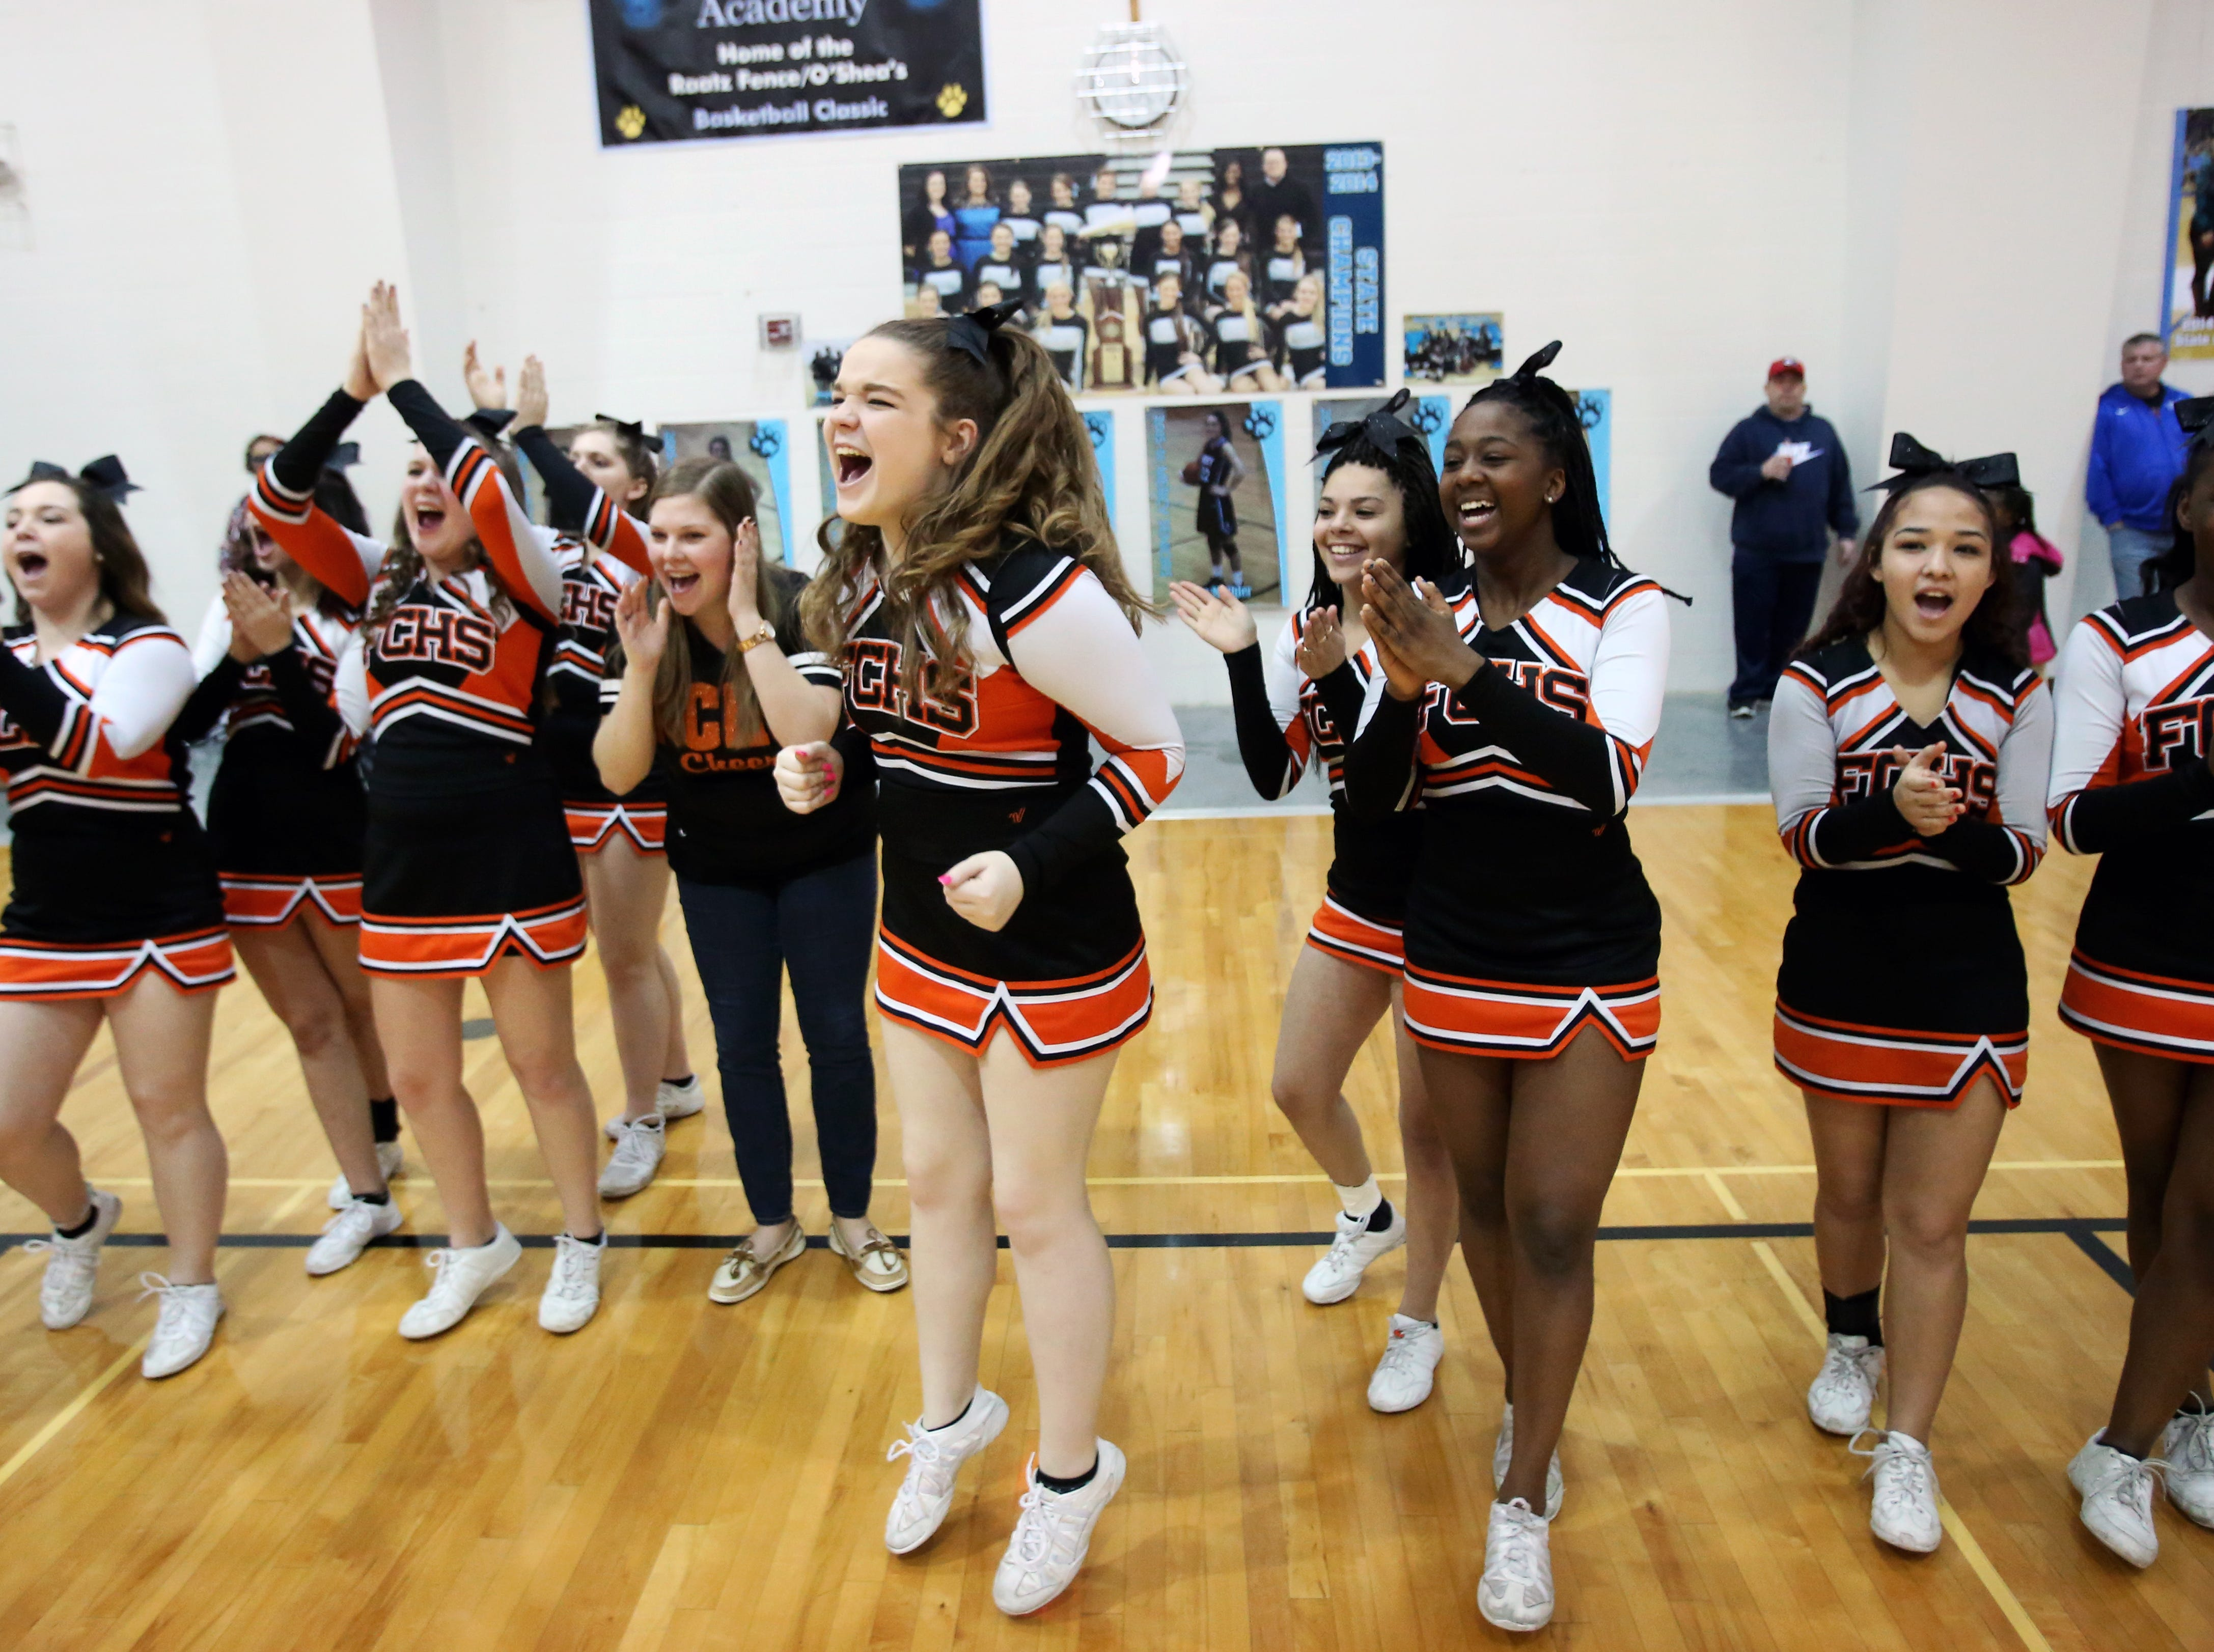 Fern Creek cheerleaders celebrate as the players get their awards for the evening.   Feb. 26, 2016